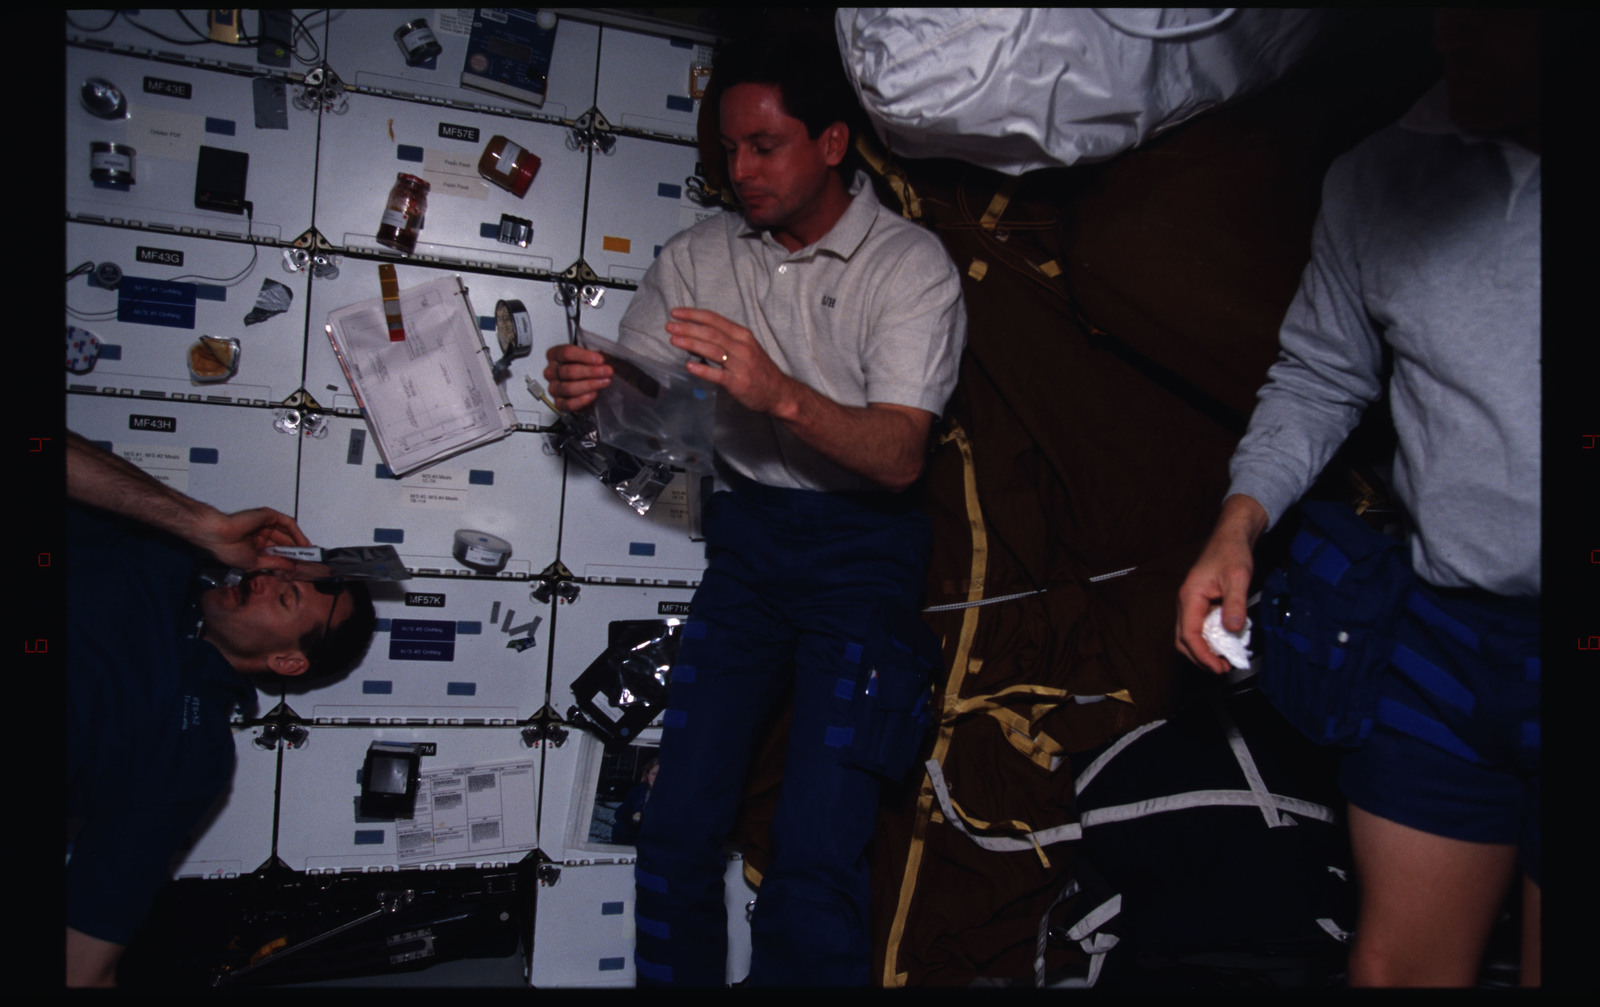 STS082-381-029 - STS-082 - Crewmember activities in the shuttle middeck on day off